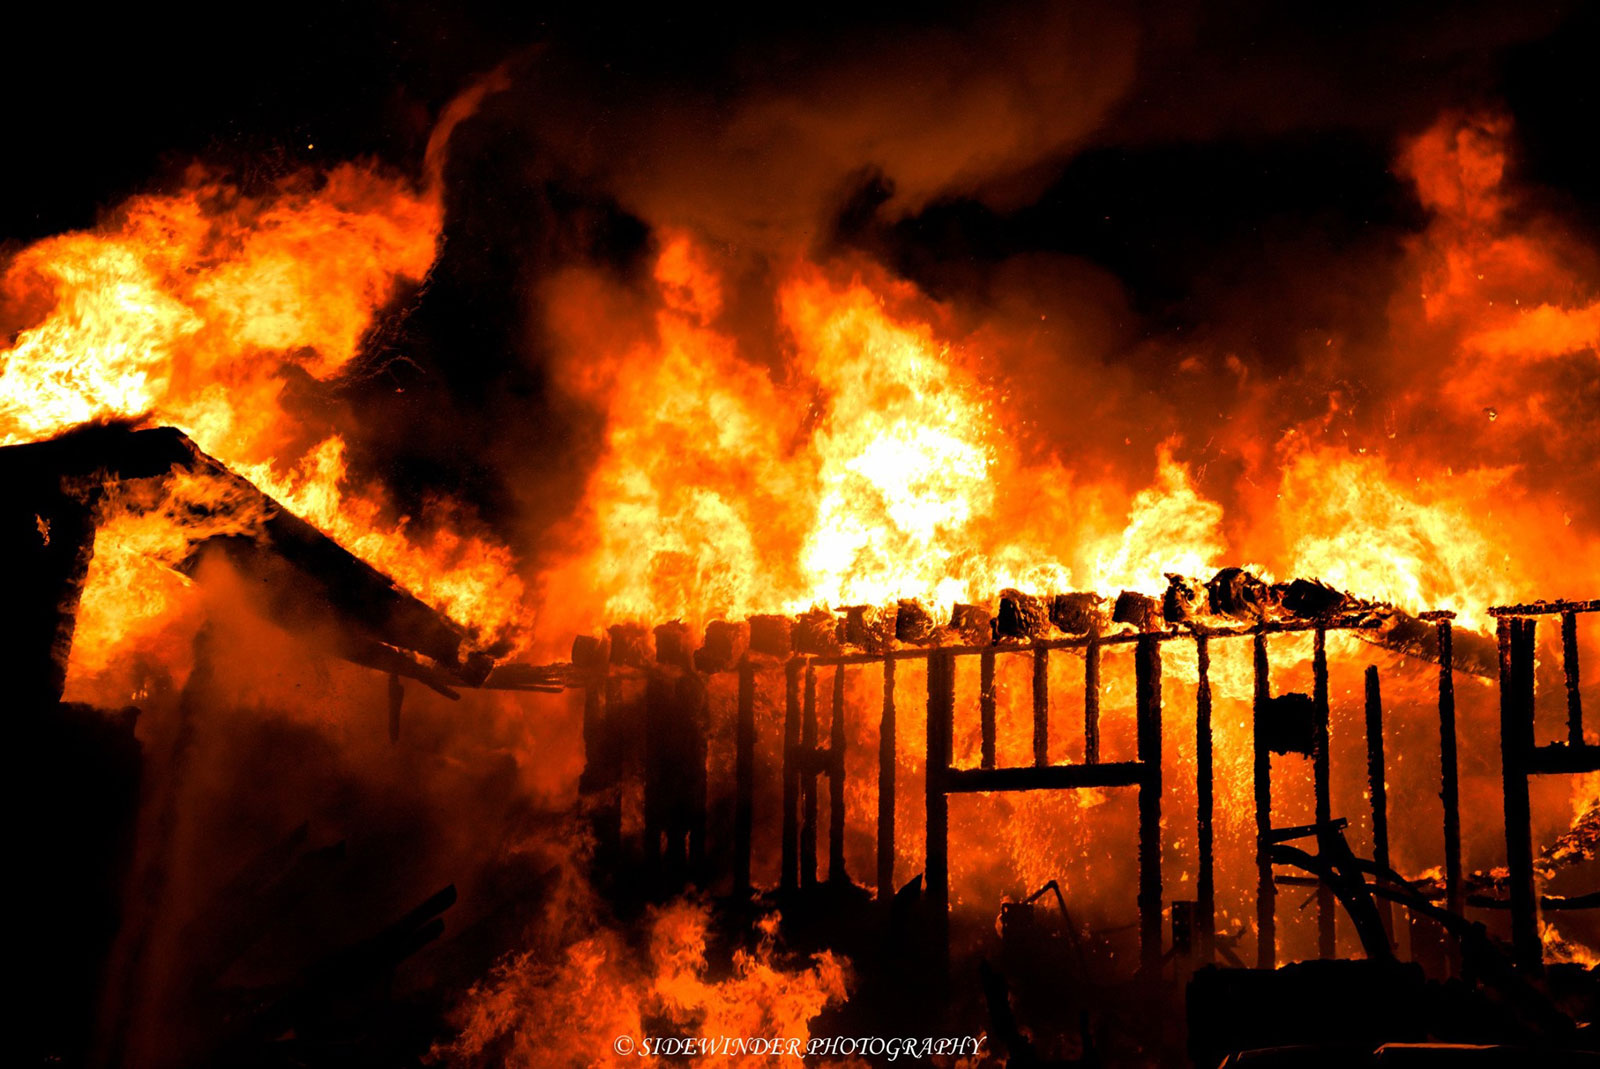 Flames tear through the structure